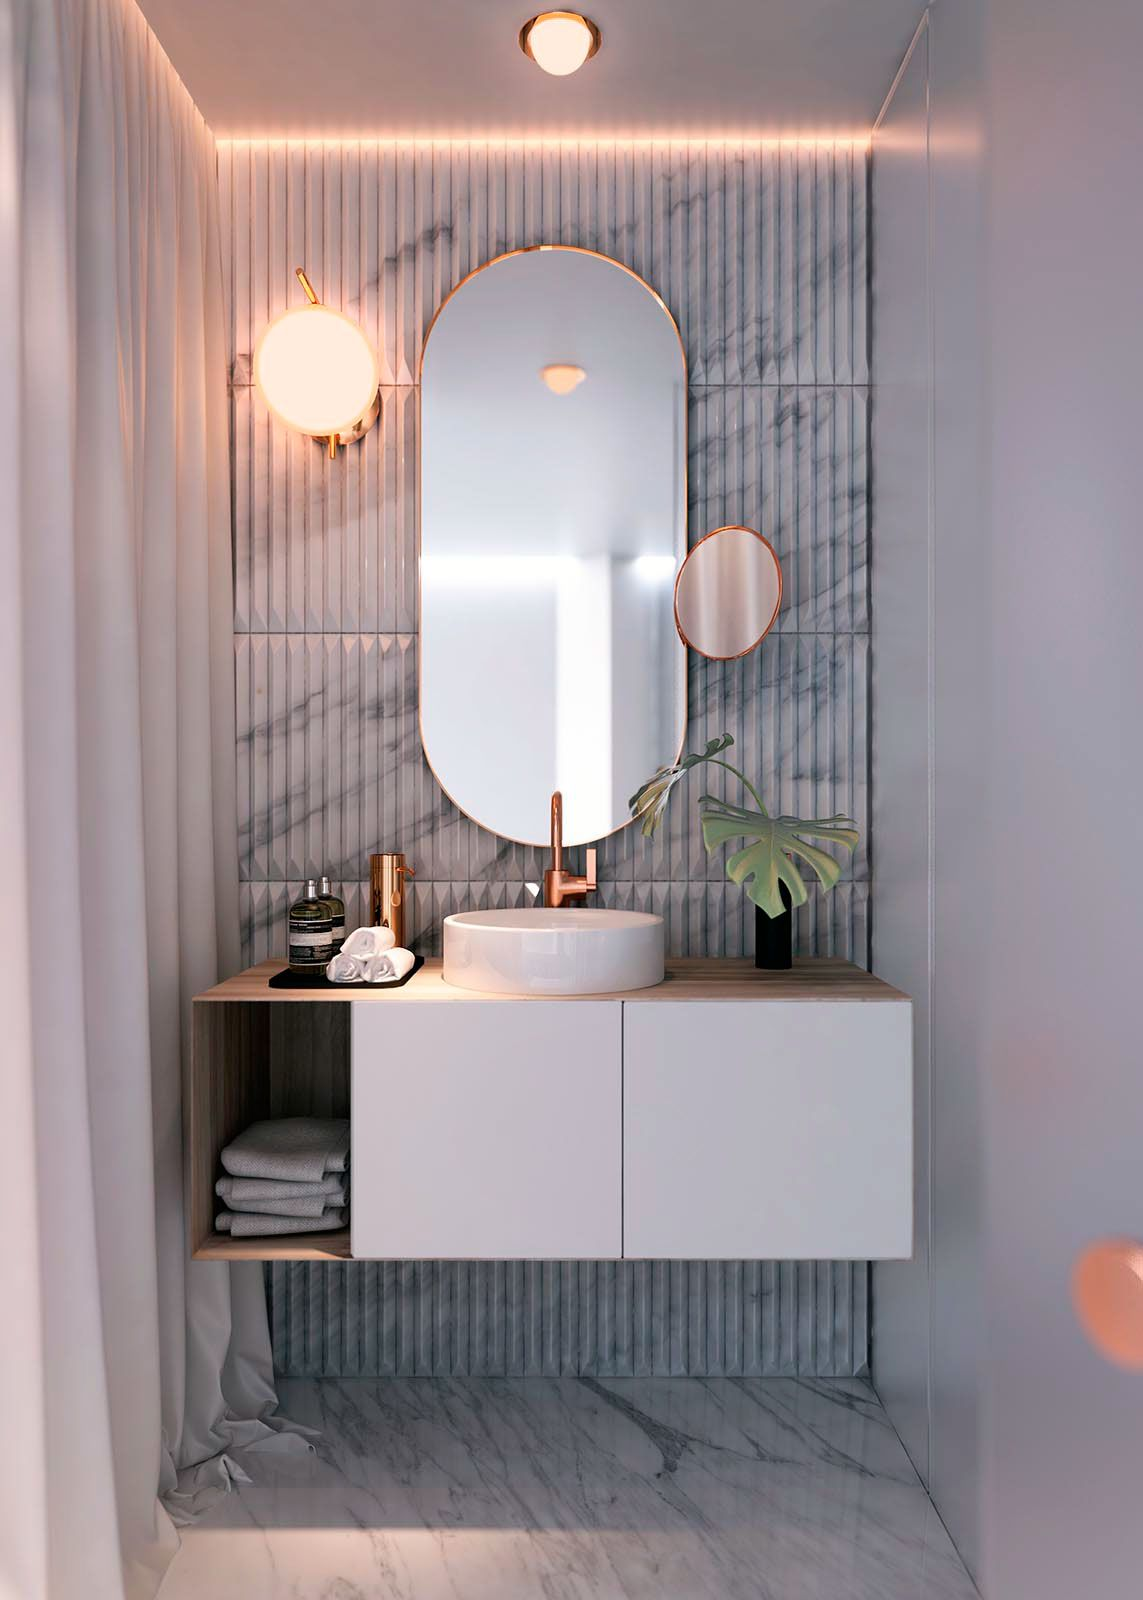 studio suite hotel room on behance | ⋆ bathroom | interior design